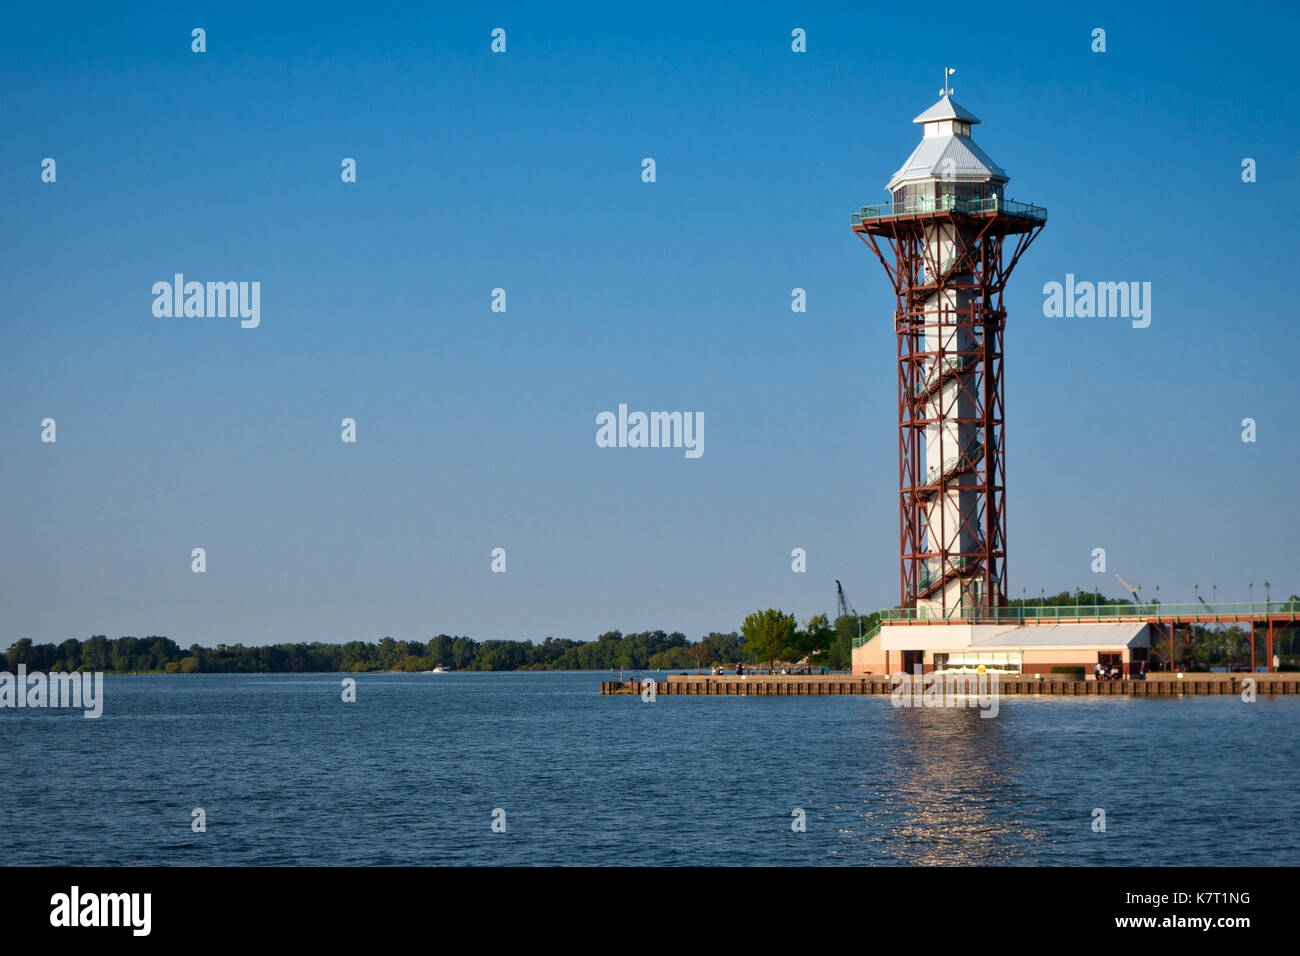 The Bicentennial Tower is an observation tower located in Erie, Pennsylvania featuring panoramic views of Lake Erie, Presque Isle, and downtown Erie. - Stock Image